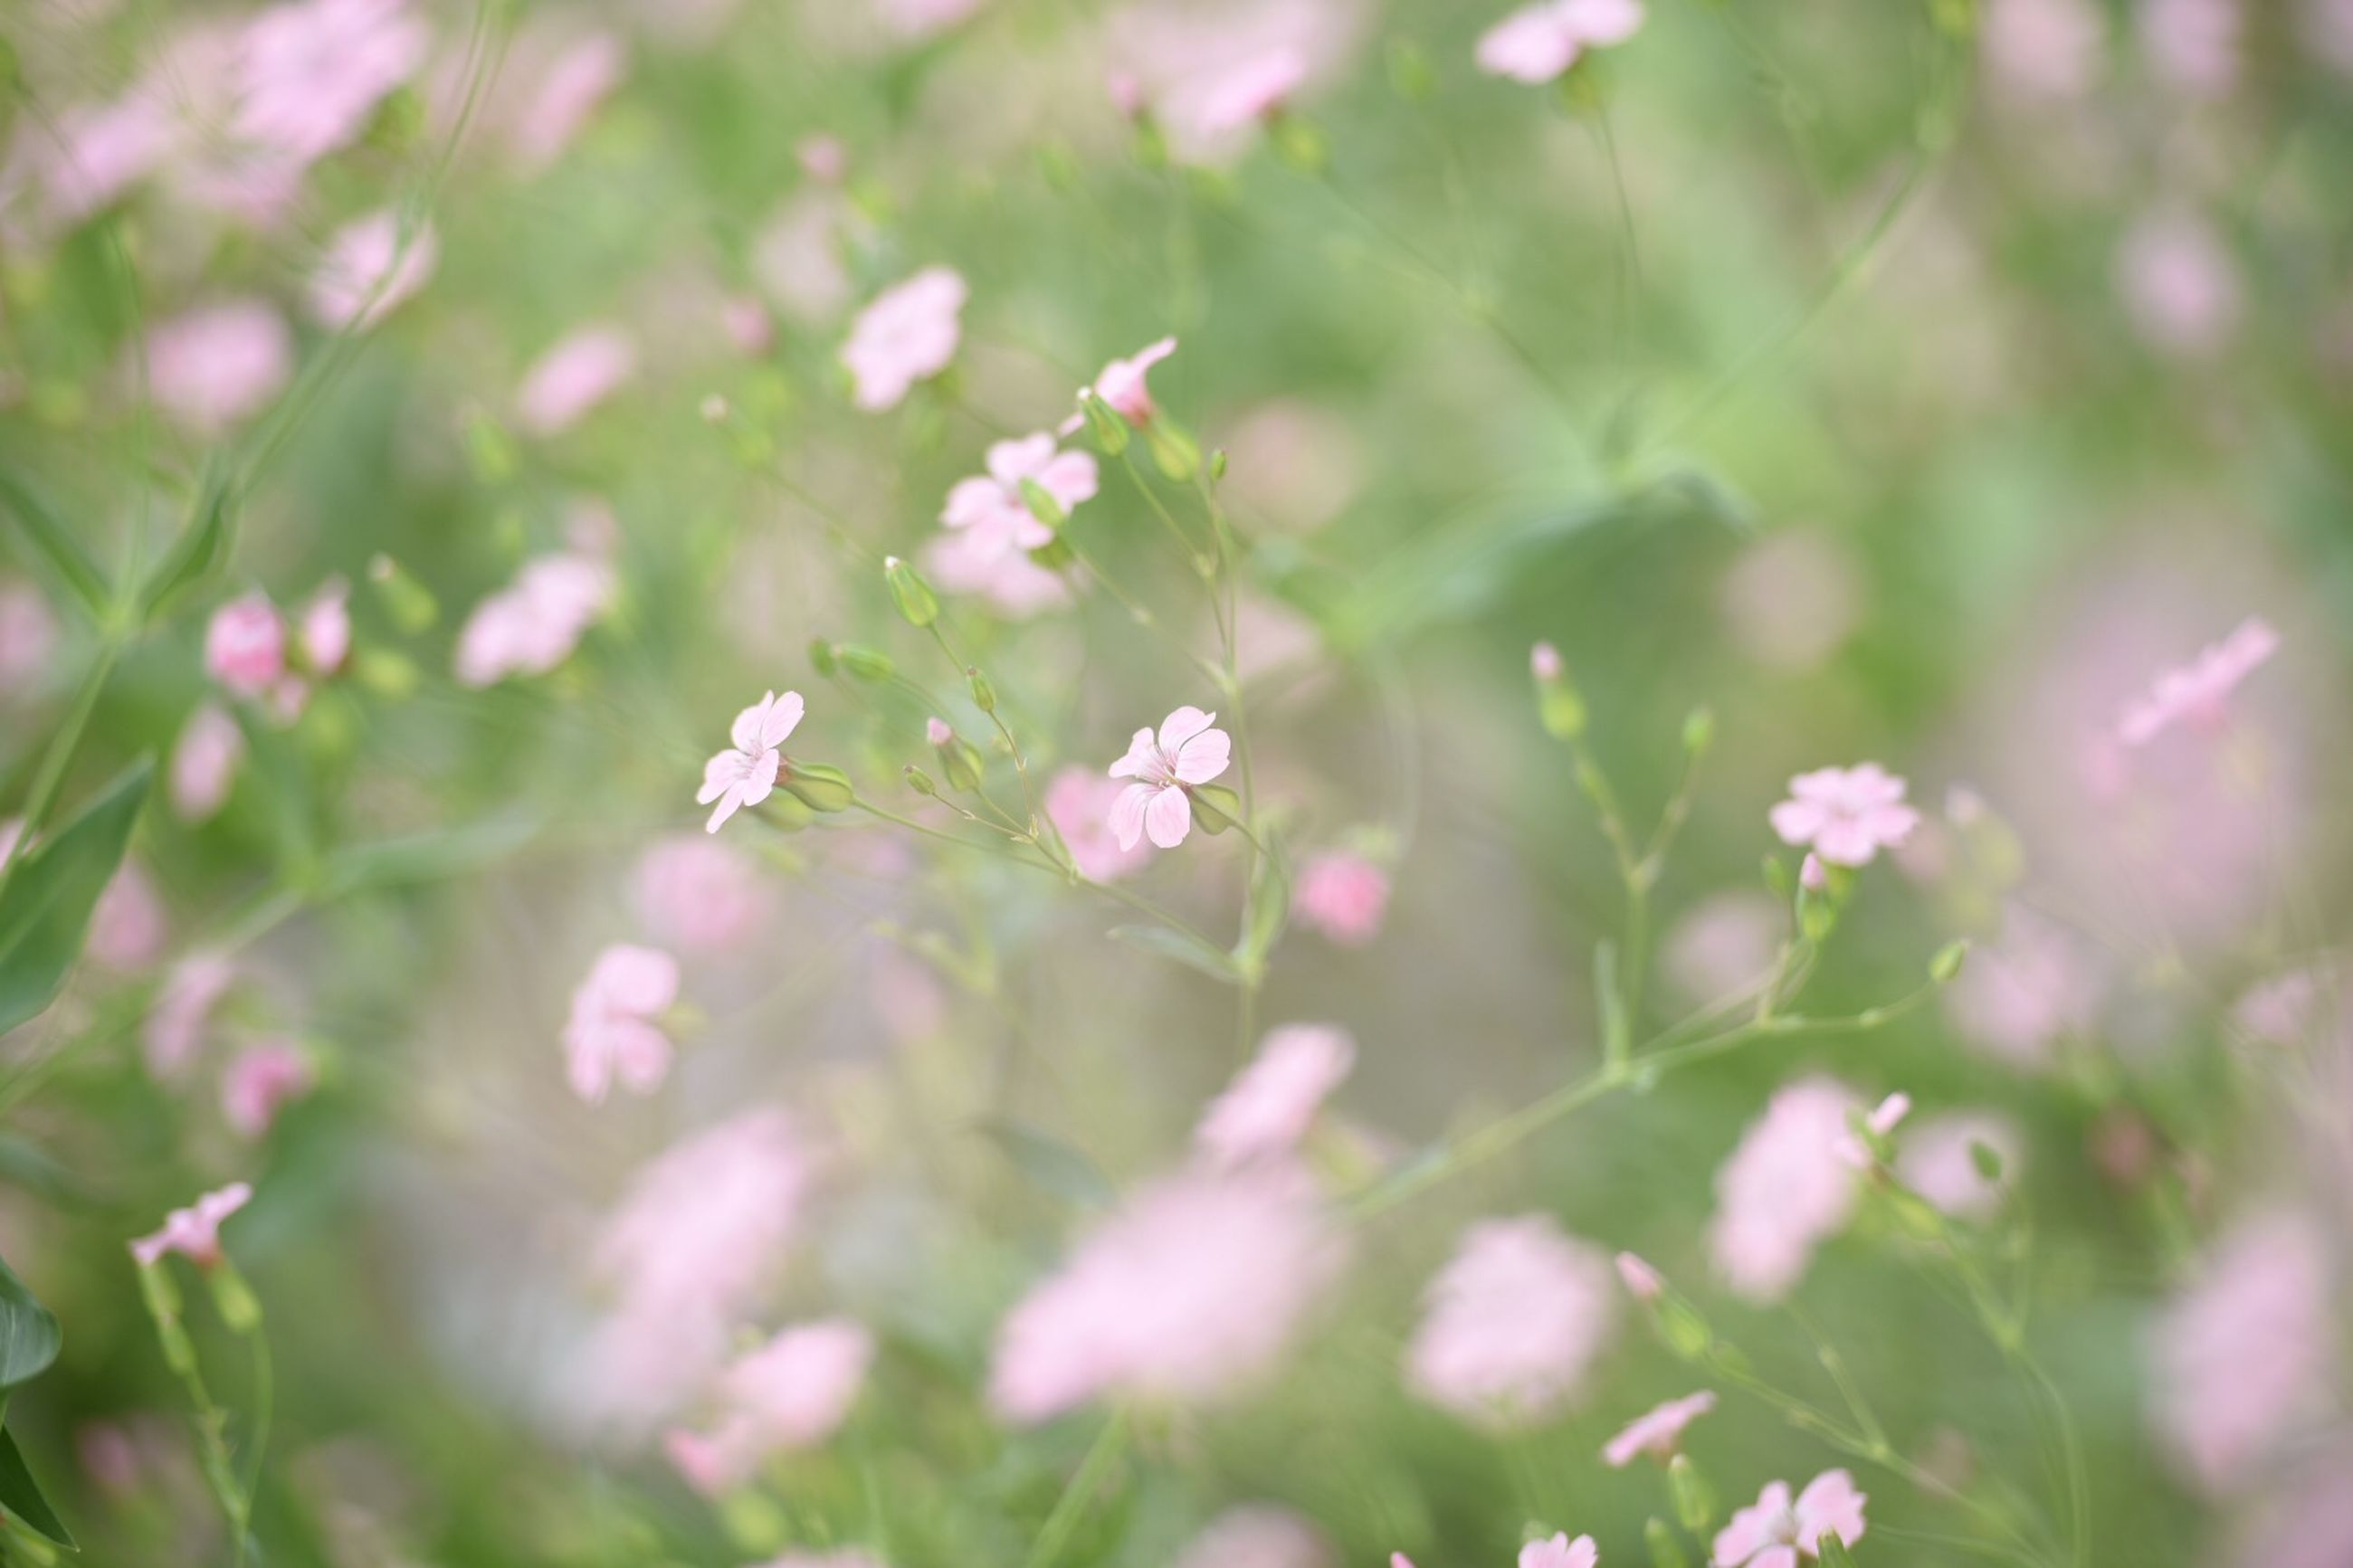 flower, growth, freshness, fragility, beauty in nature, plant, petal, nature, blooming, focus on foreground, selective focus, close-up, flower head, animal themes, one animal, pink color, outdoors, day, in bloom, stem